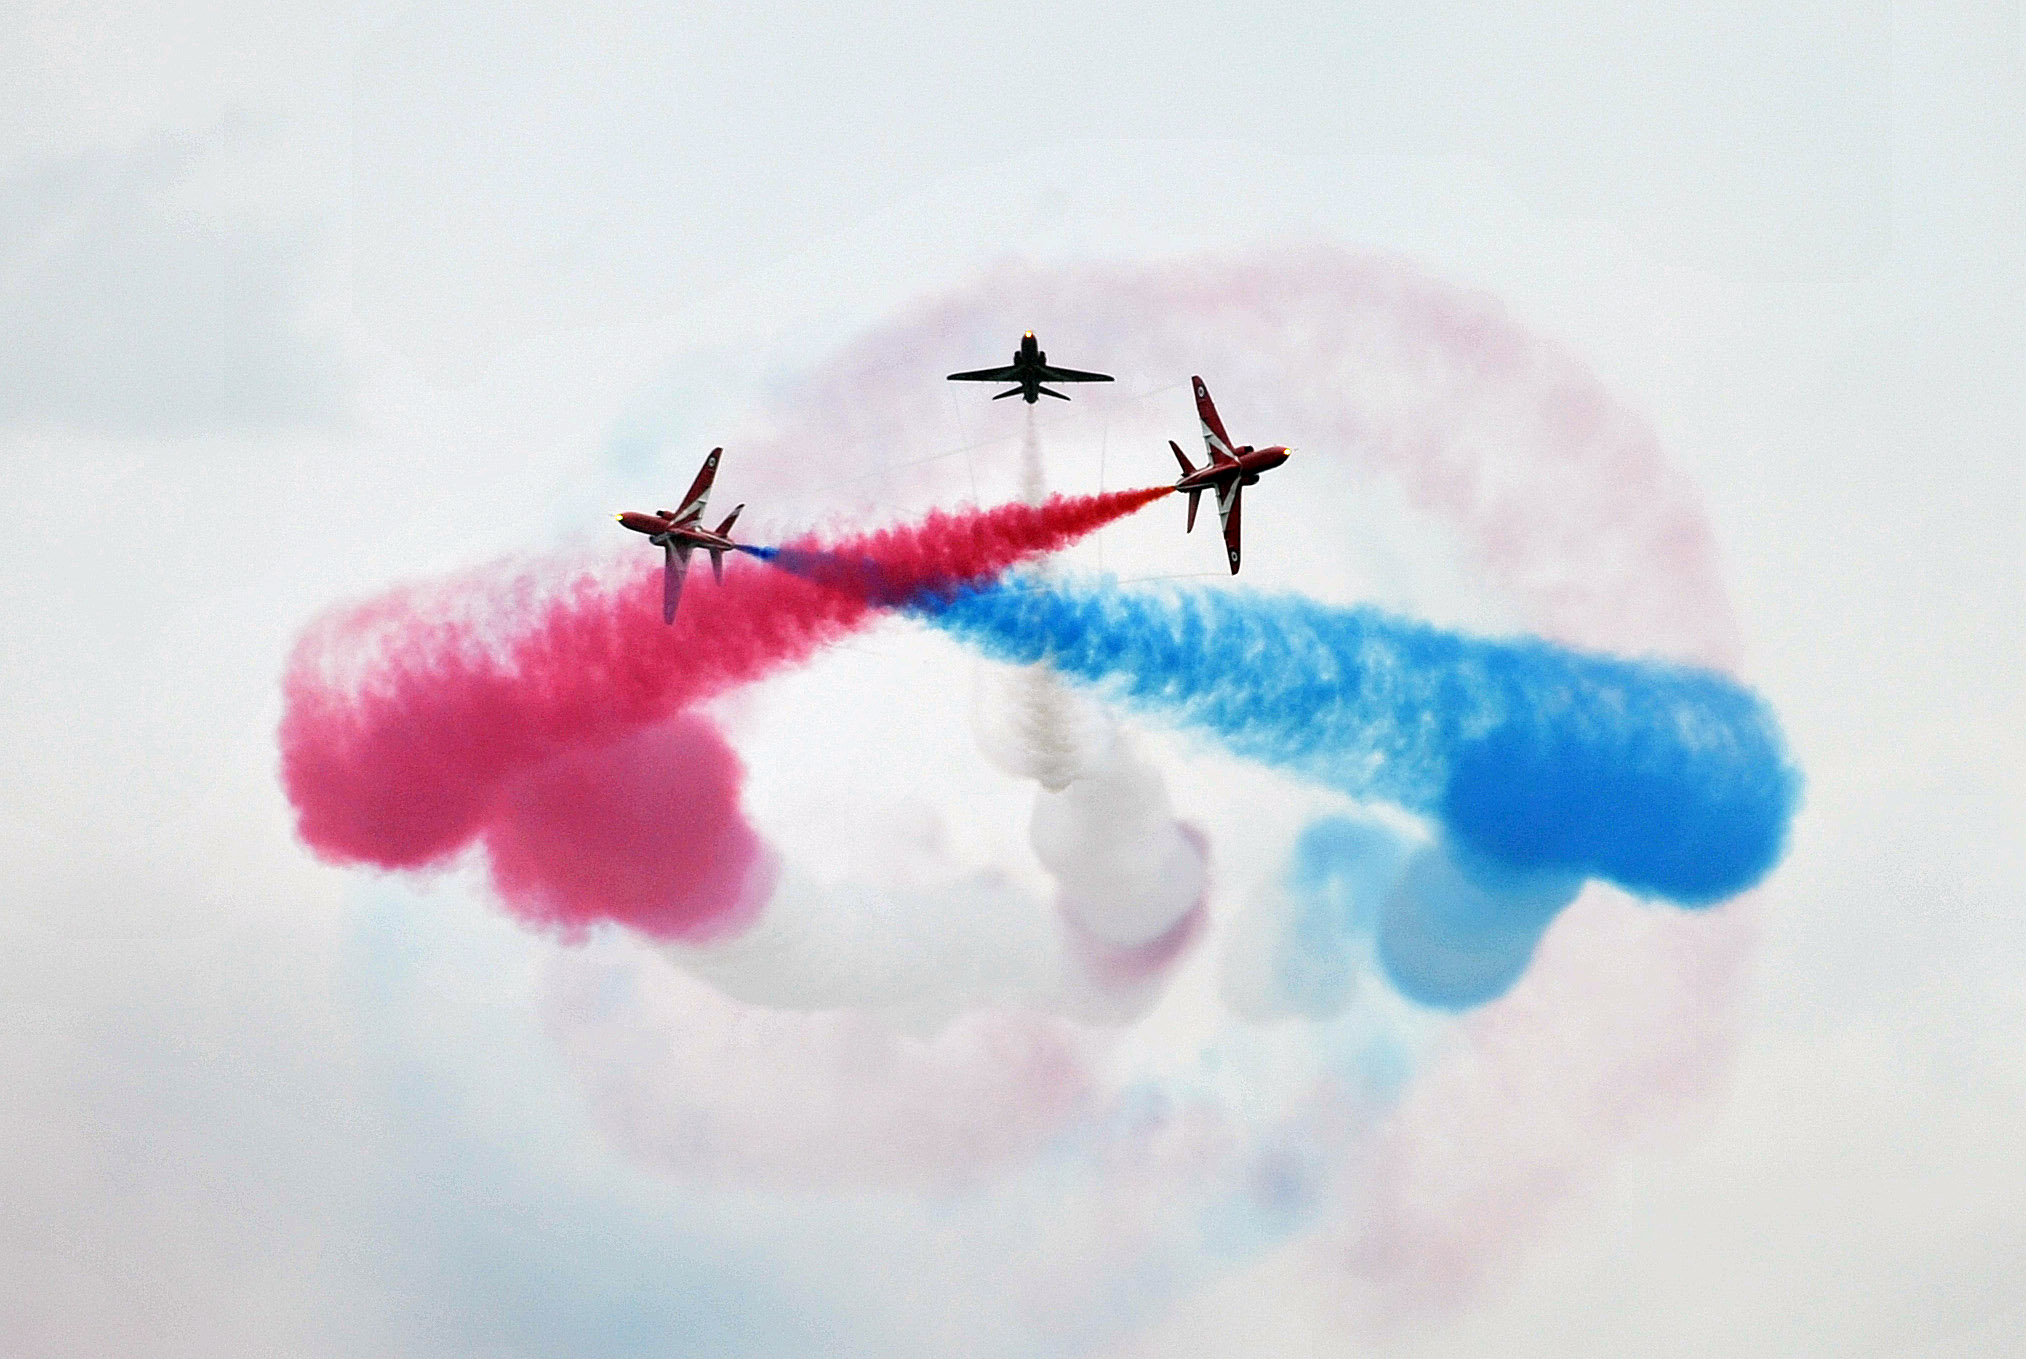 AIRSHOW NEWS: Full RAF allocation confirmed for Wings & Wheels 2016